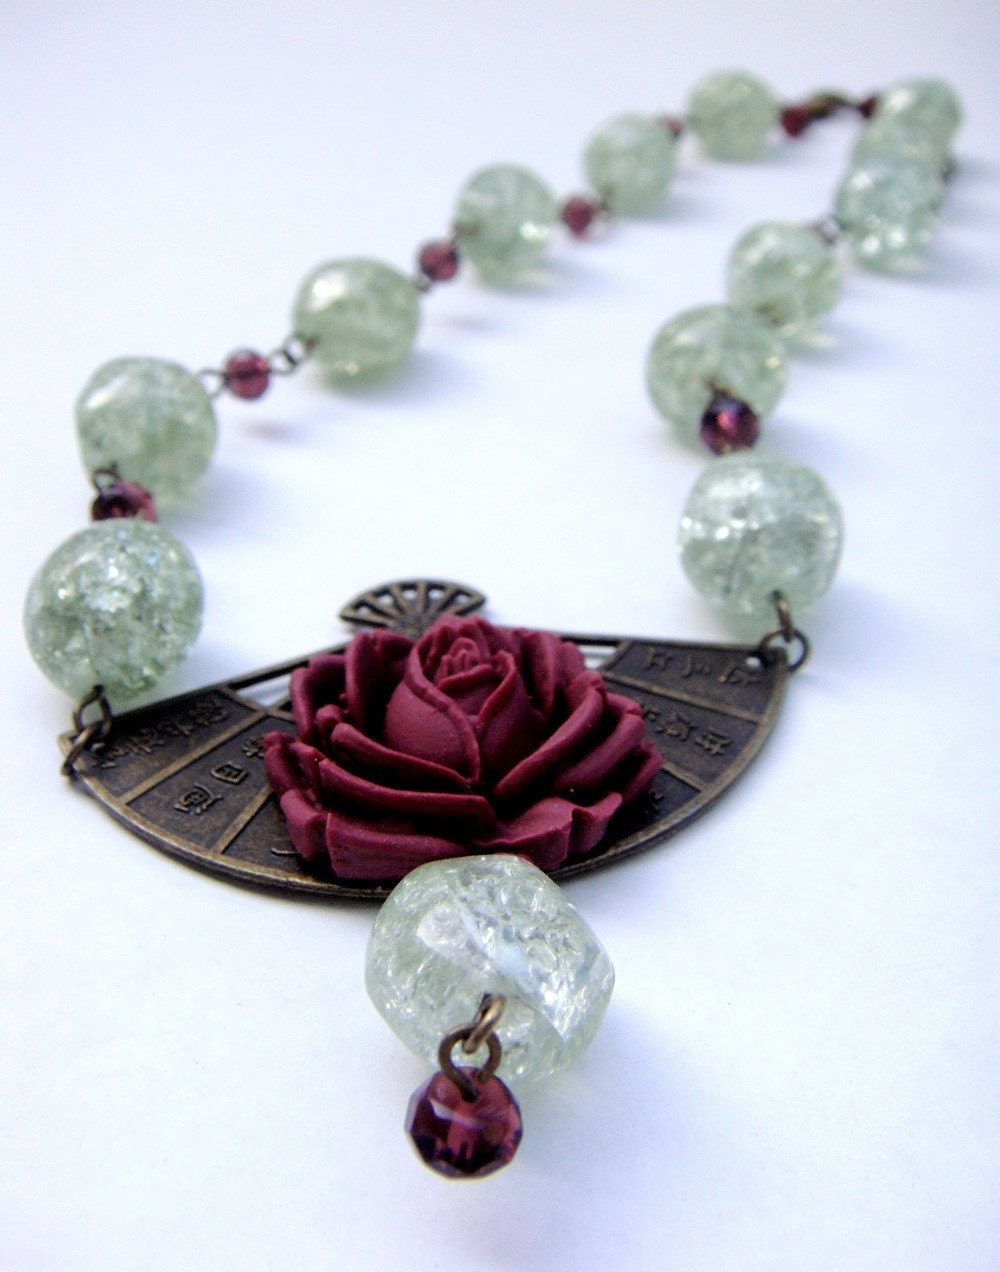 GARDEN ROSE NECKLACE